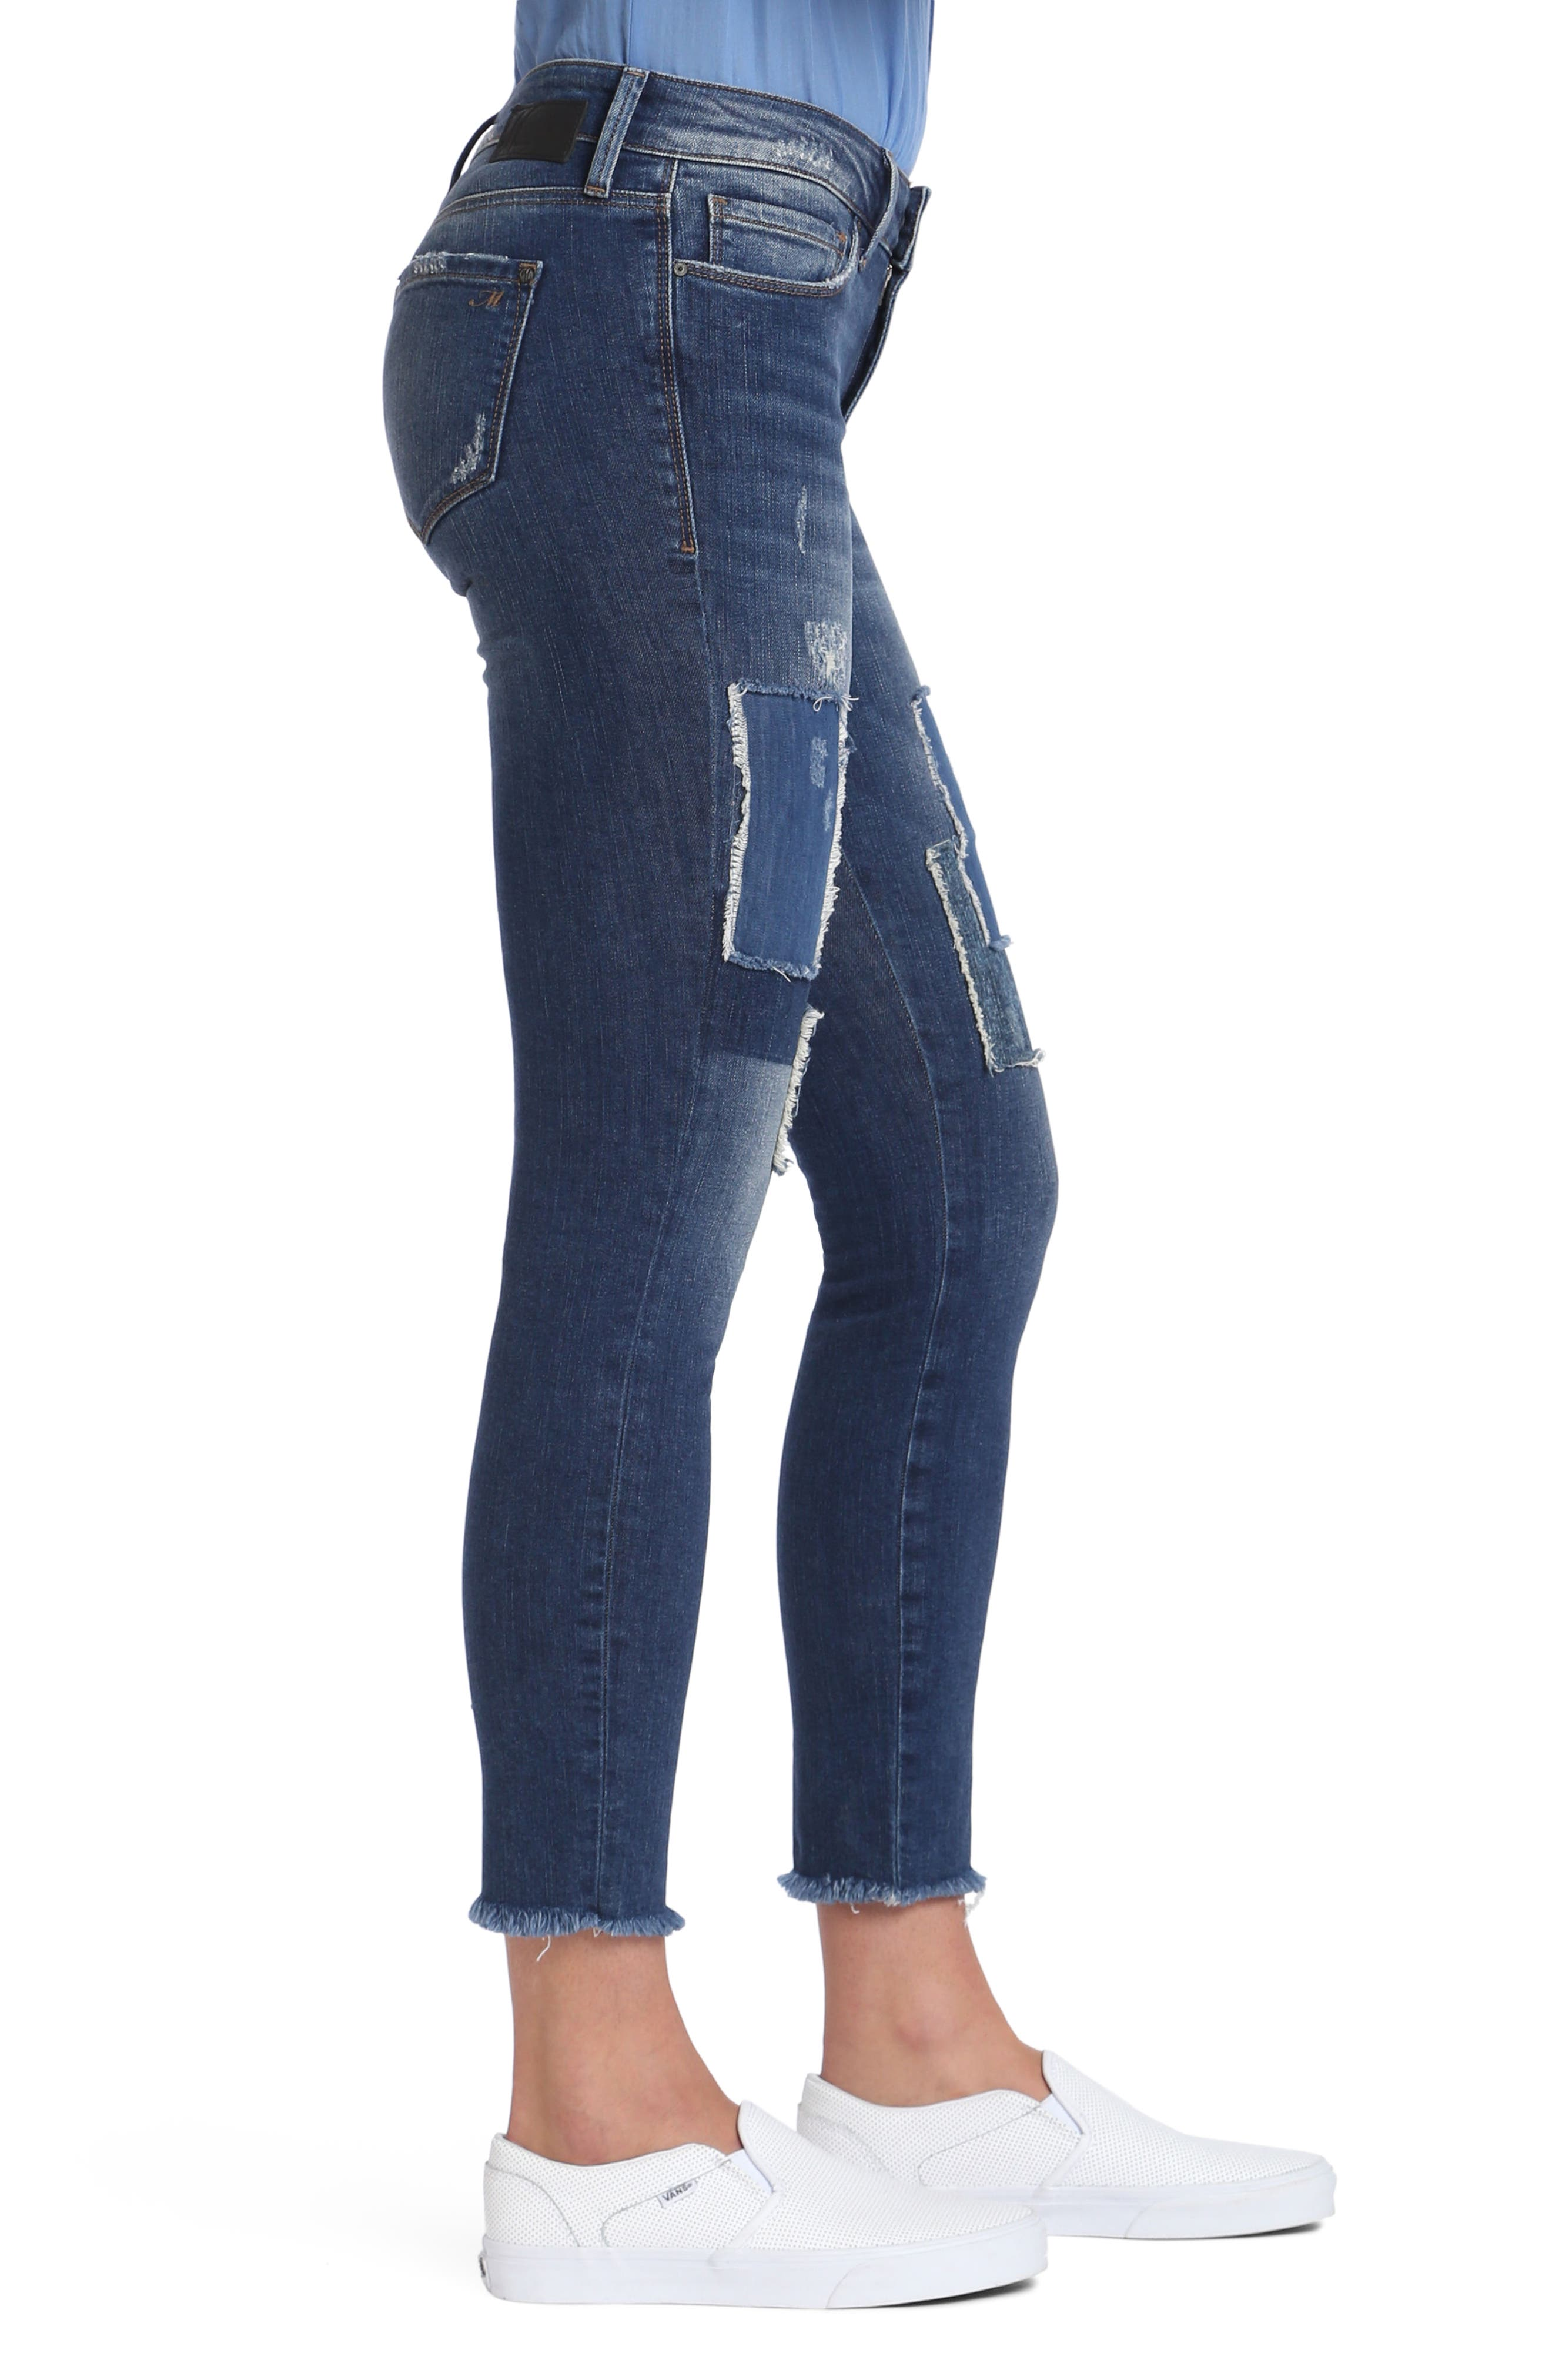 Adriana Patched Stretch Skinny Jeans,                             Alternate thumbnail 3, color,                             401